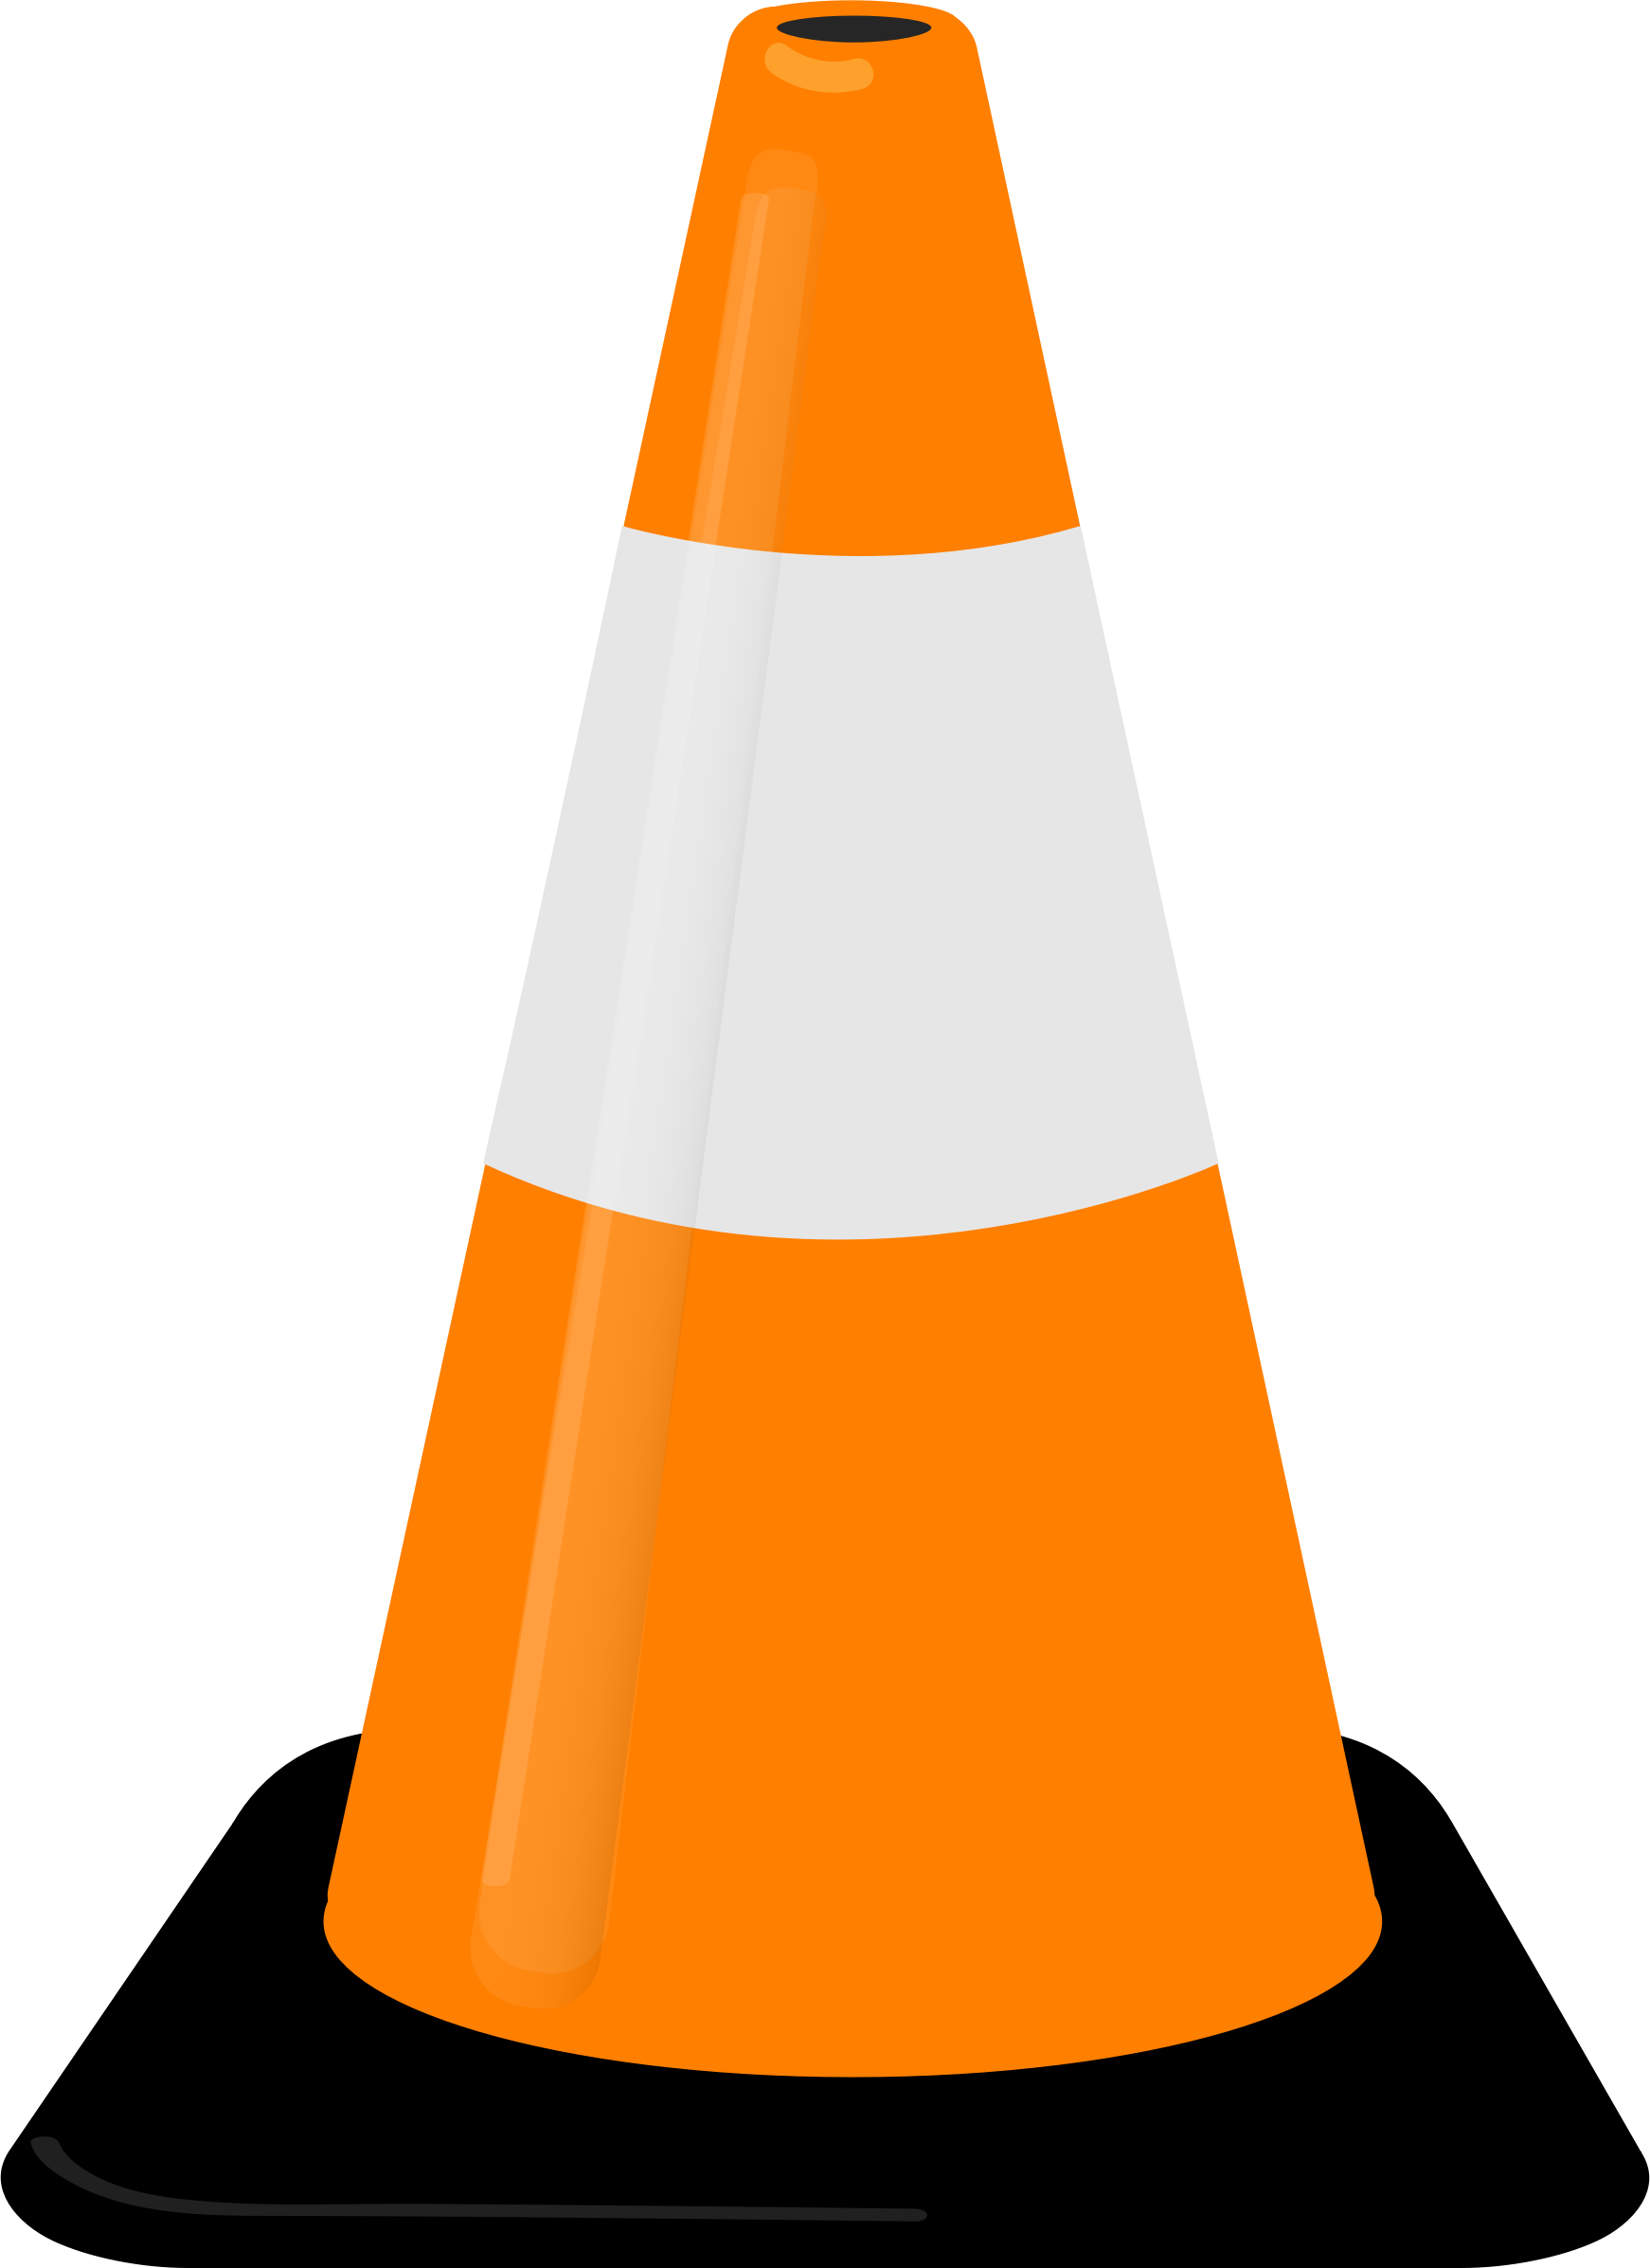 Cone by Milkman666